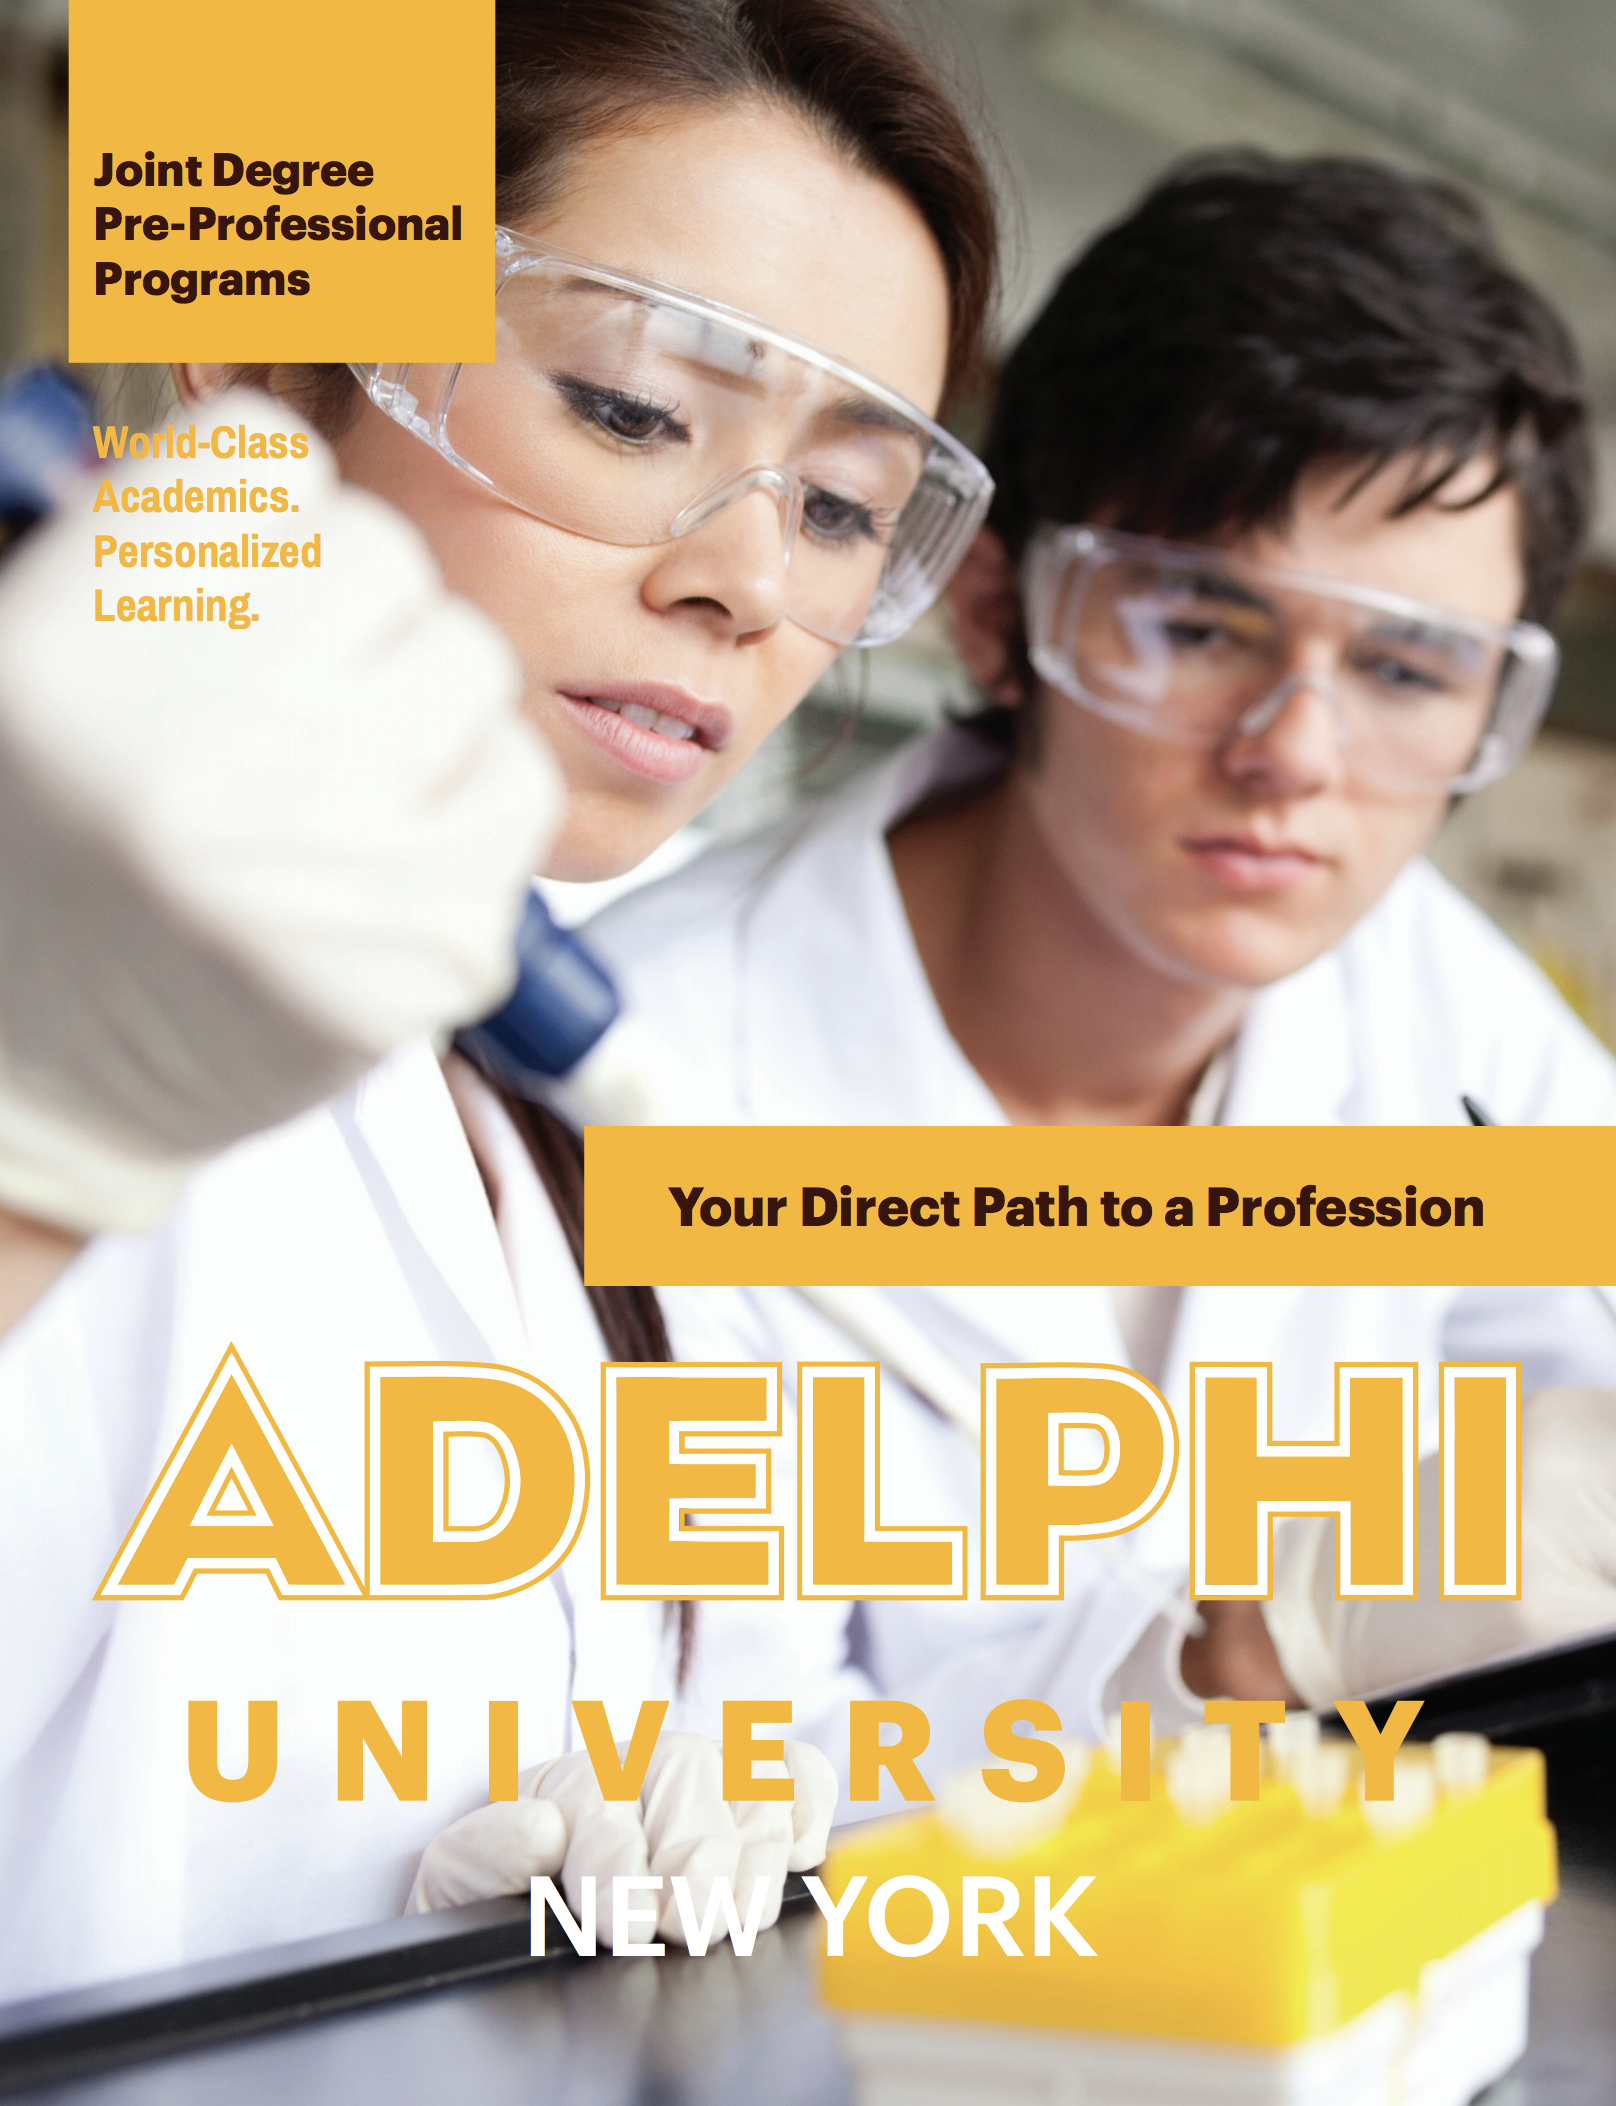 Pre-professional and Joint Degree programs